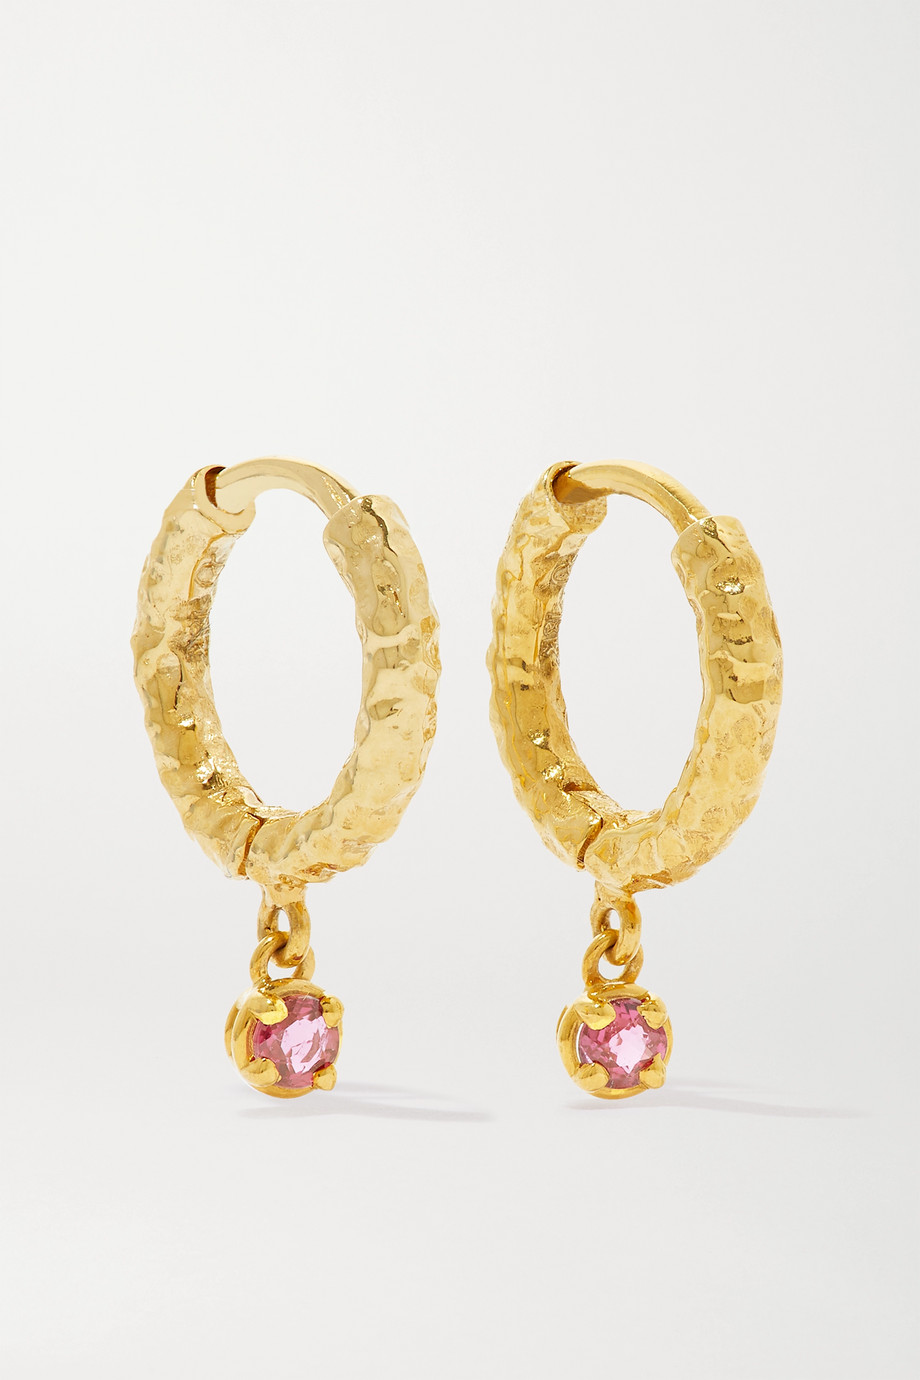 Octavia Elizabeth + NET SUSTAIN Micro Gabby 18-karat gold ruby hoop earrings